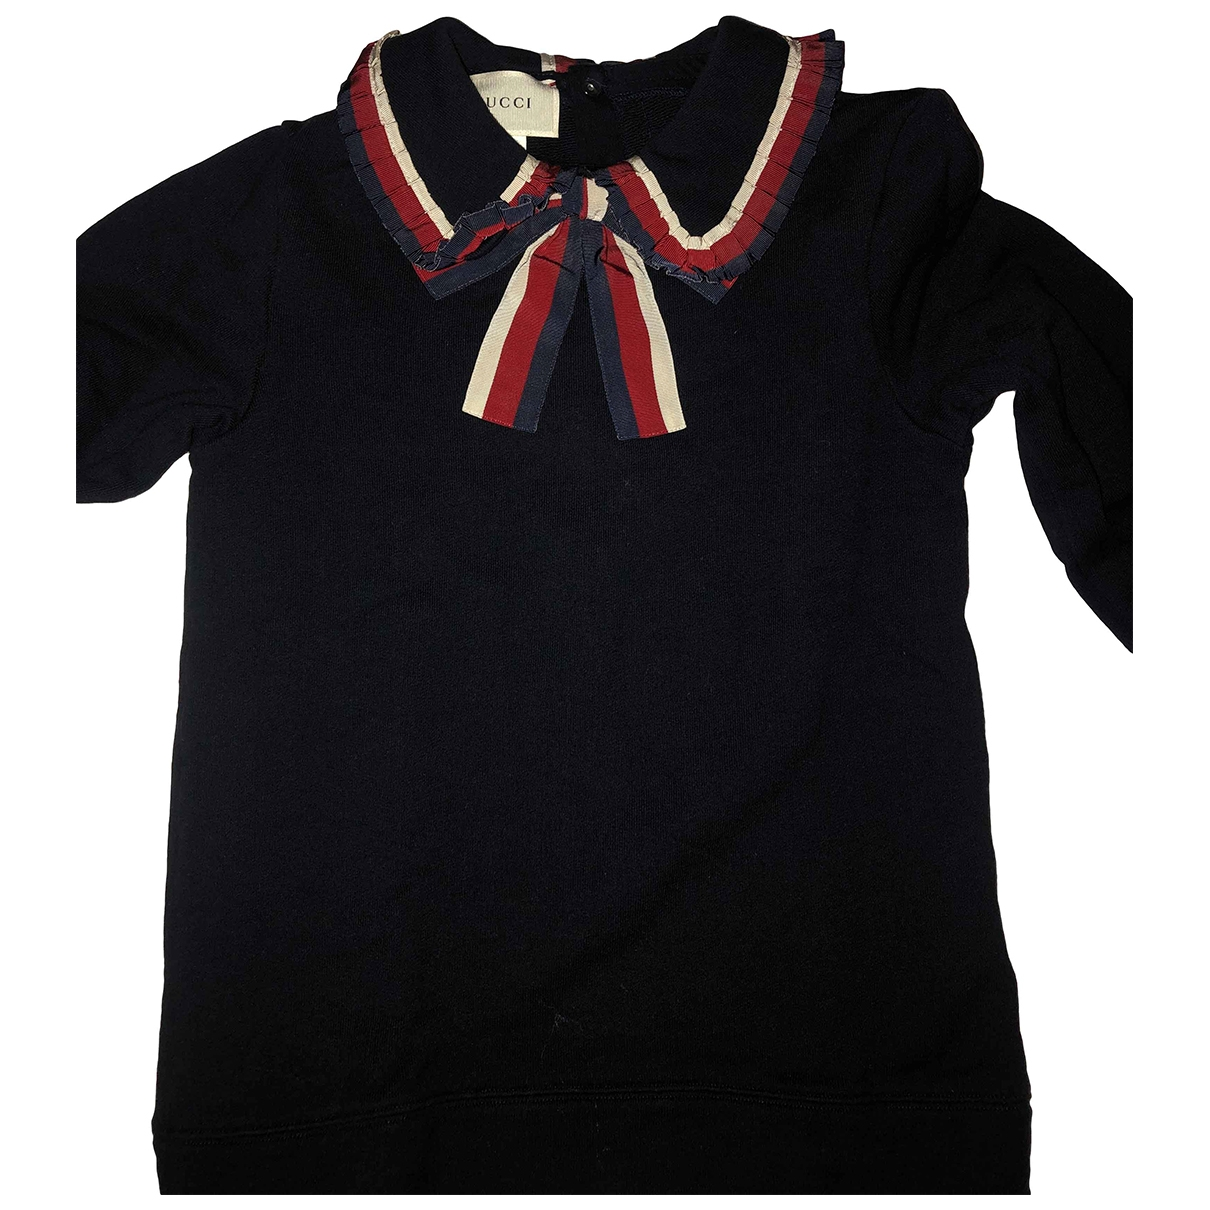 Gucci \N Blue Cotton - elasthane dress for Kids 10 years - until 56 inches UK